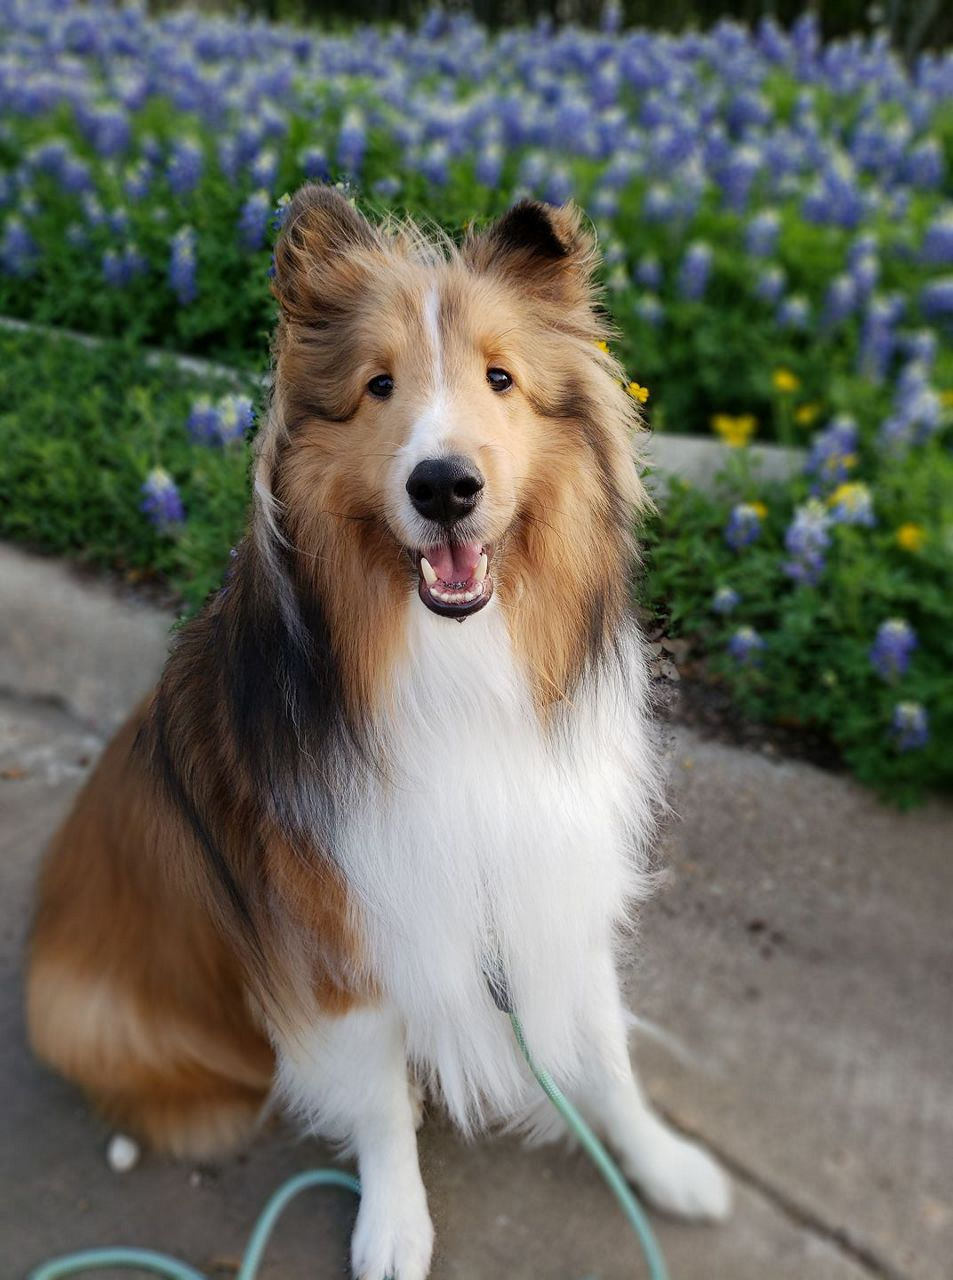 Collie poses with Texas wildflowers.